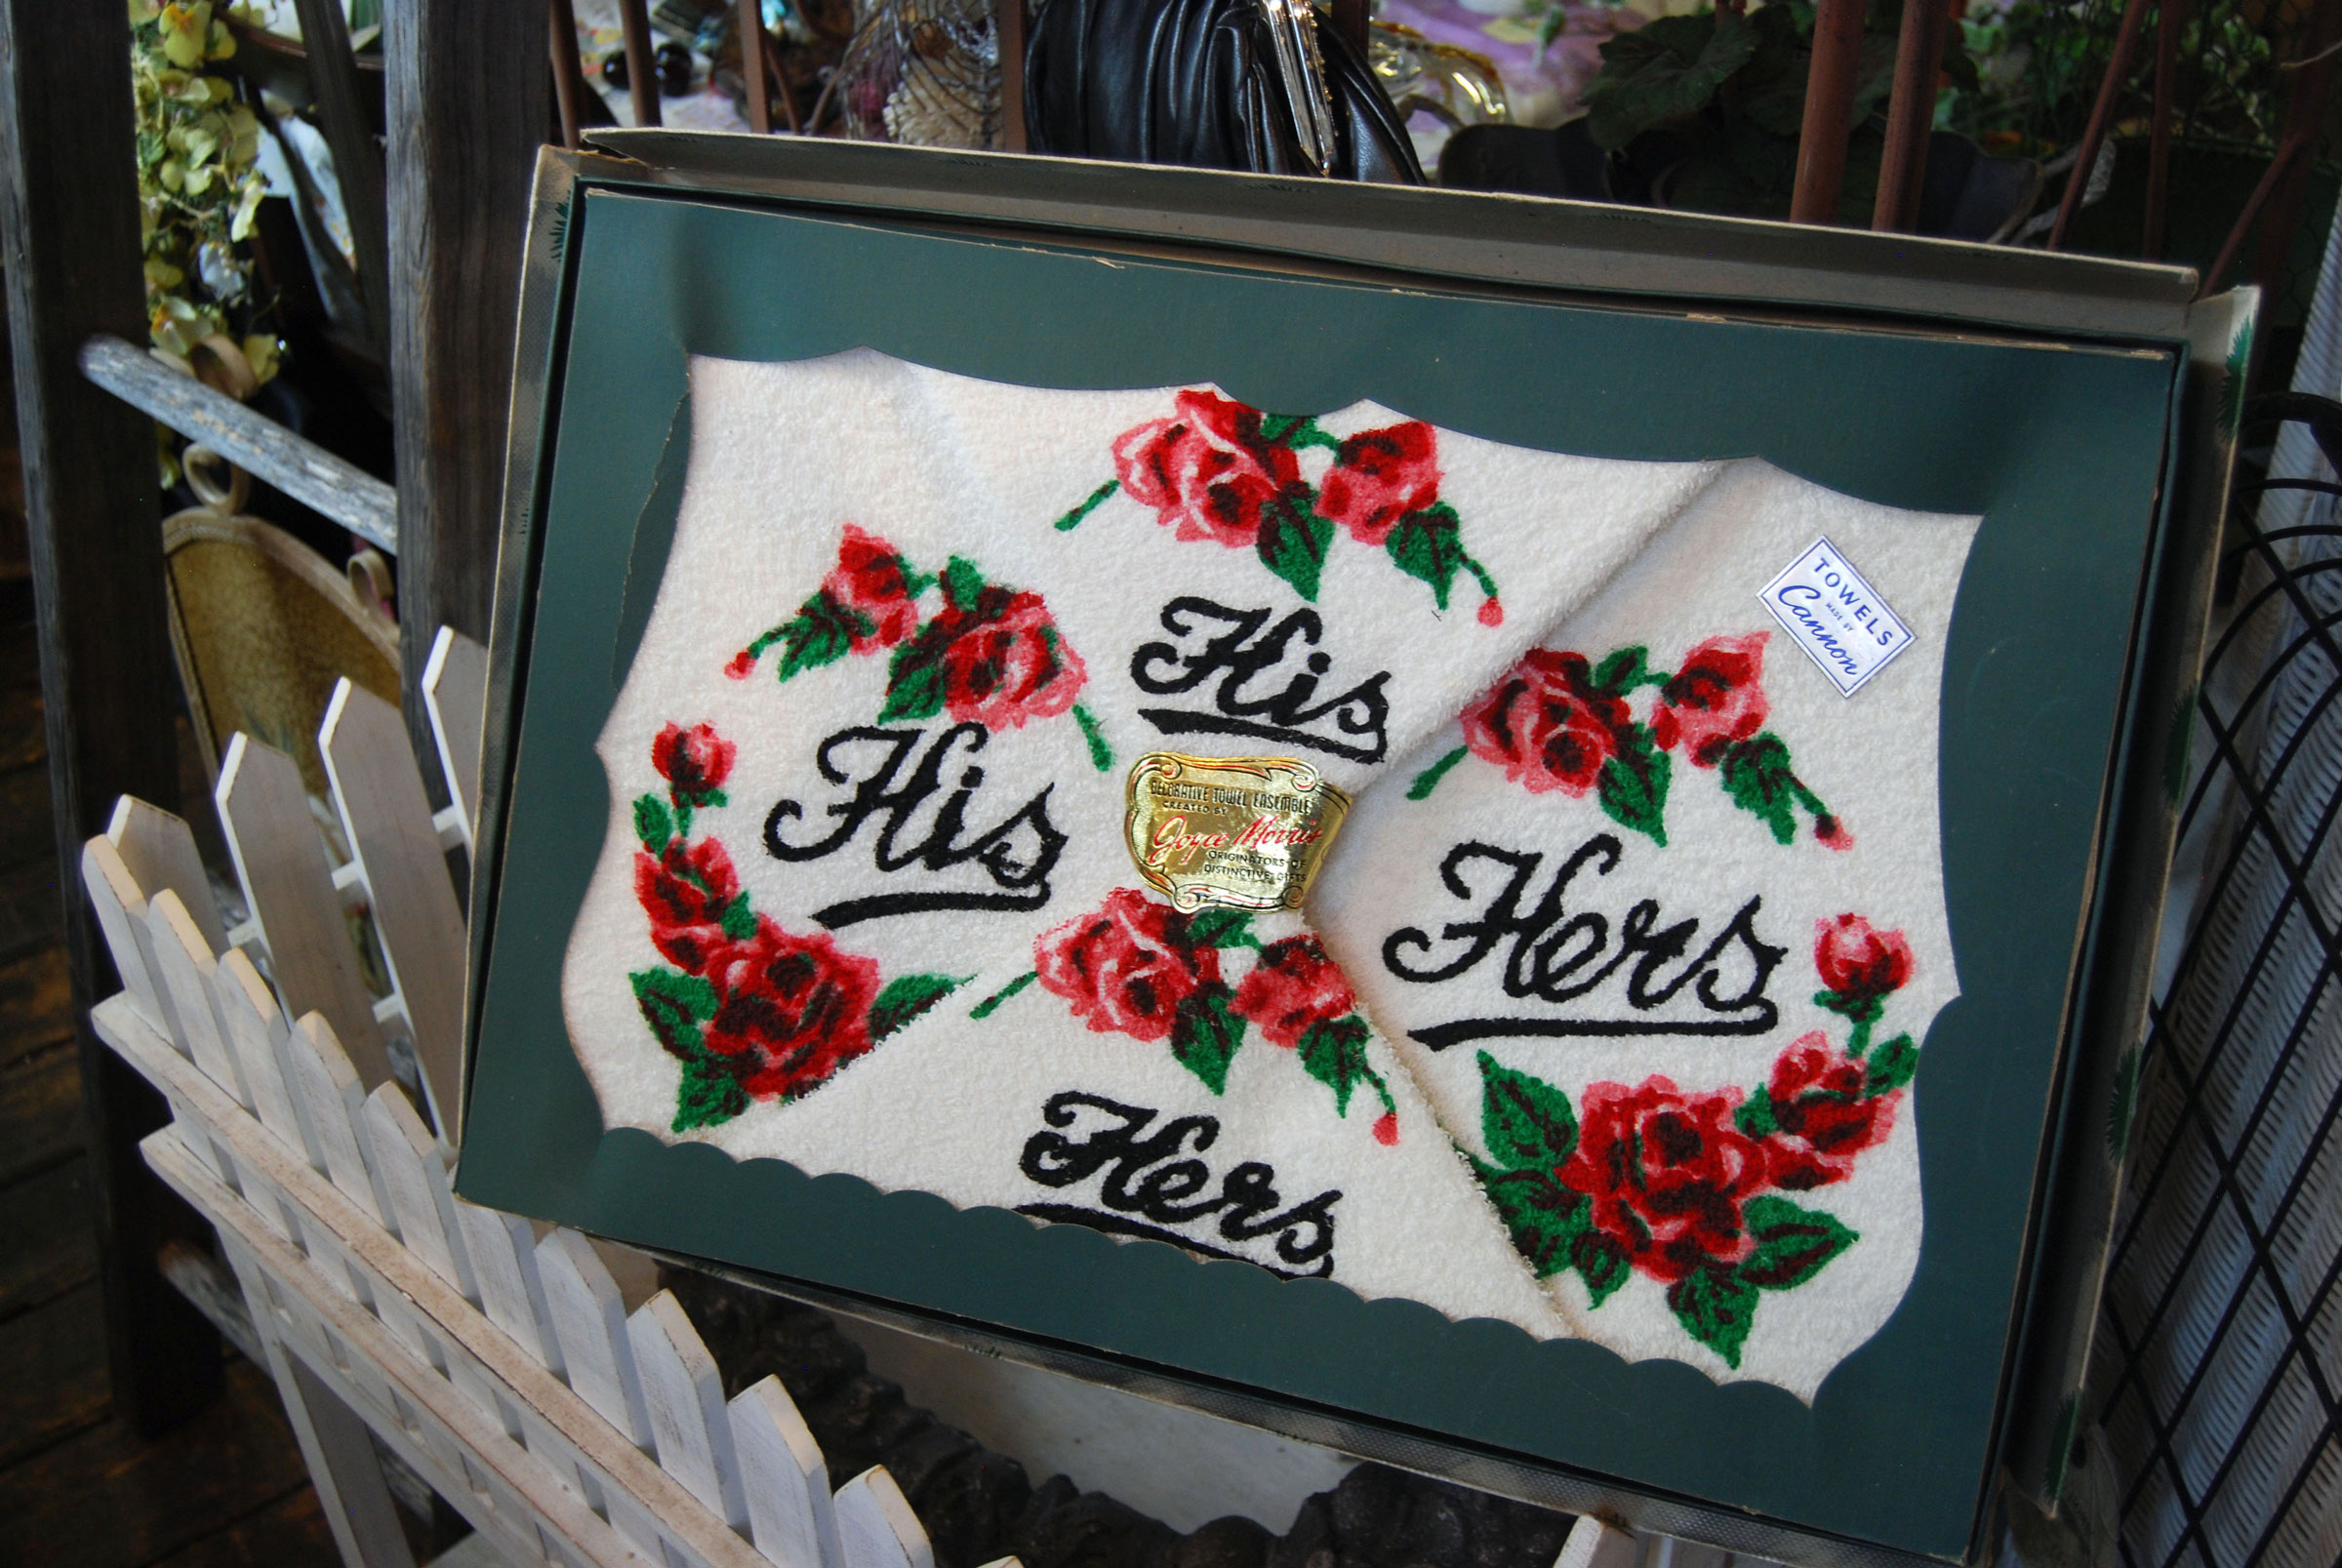 His & Hers towel set from 1920s